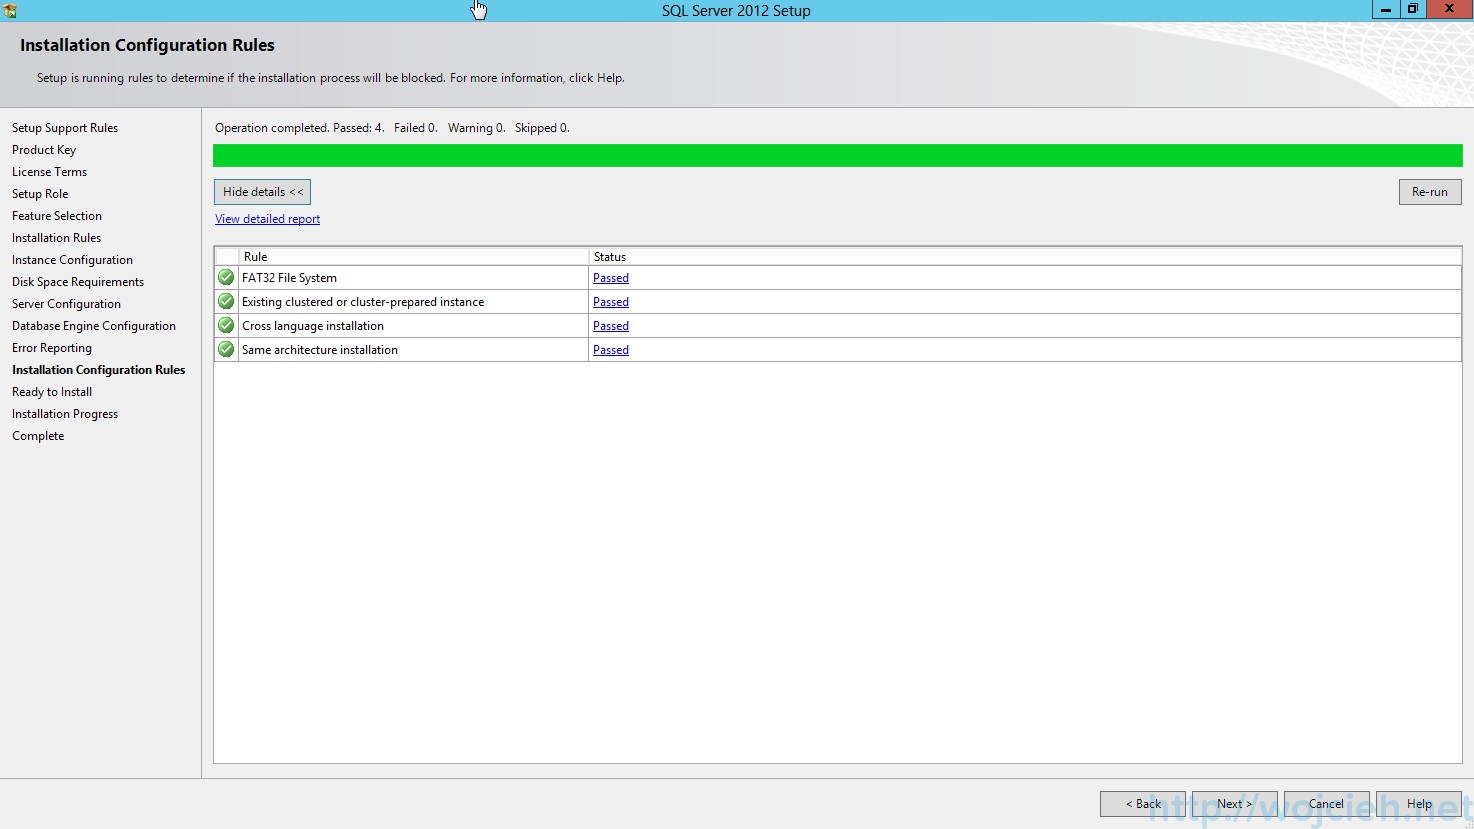 SQL Server 2012 SP1 - Installation Configuration Rules